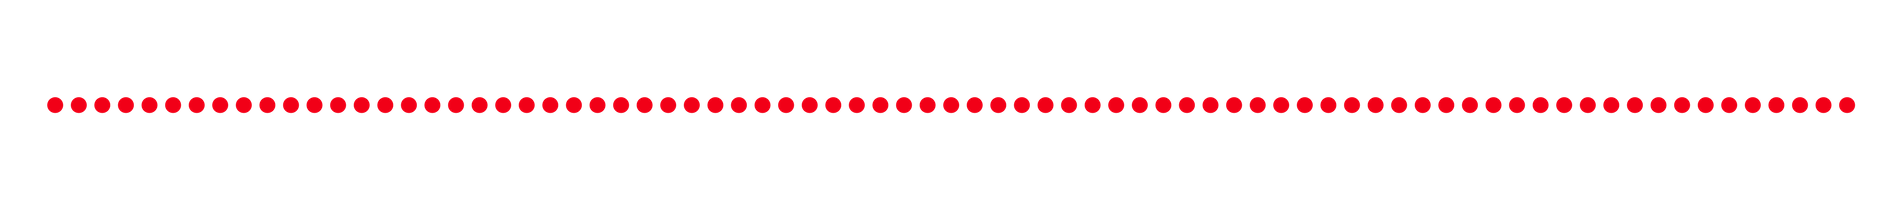 KNM Line (1).png